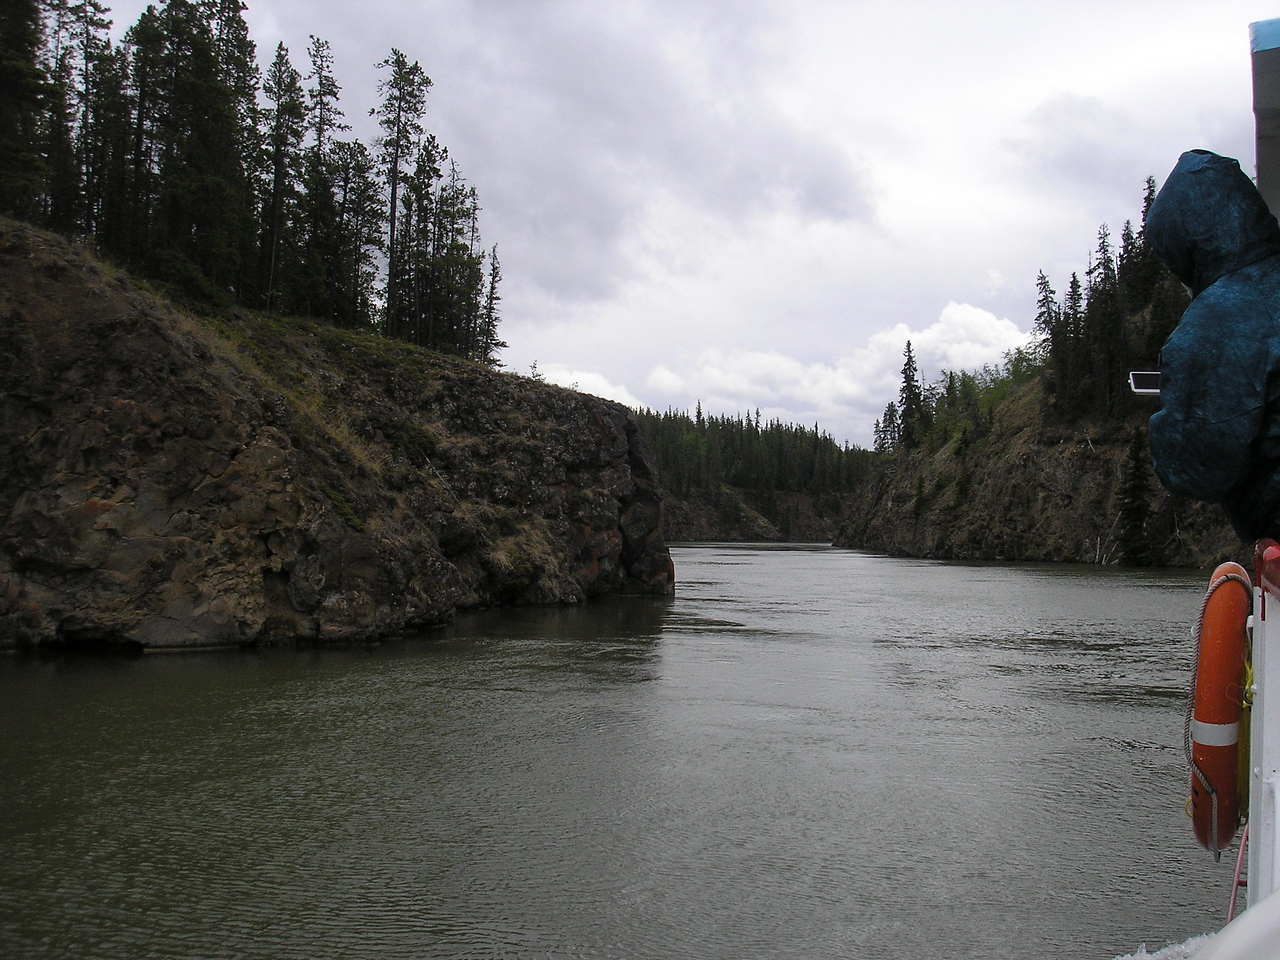 At one time this part of the Yukon River was known for its dangerous rapids, now because of the dam at Whitehorse they are no longer there.